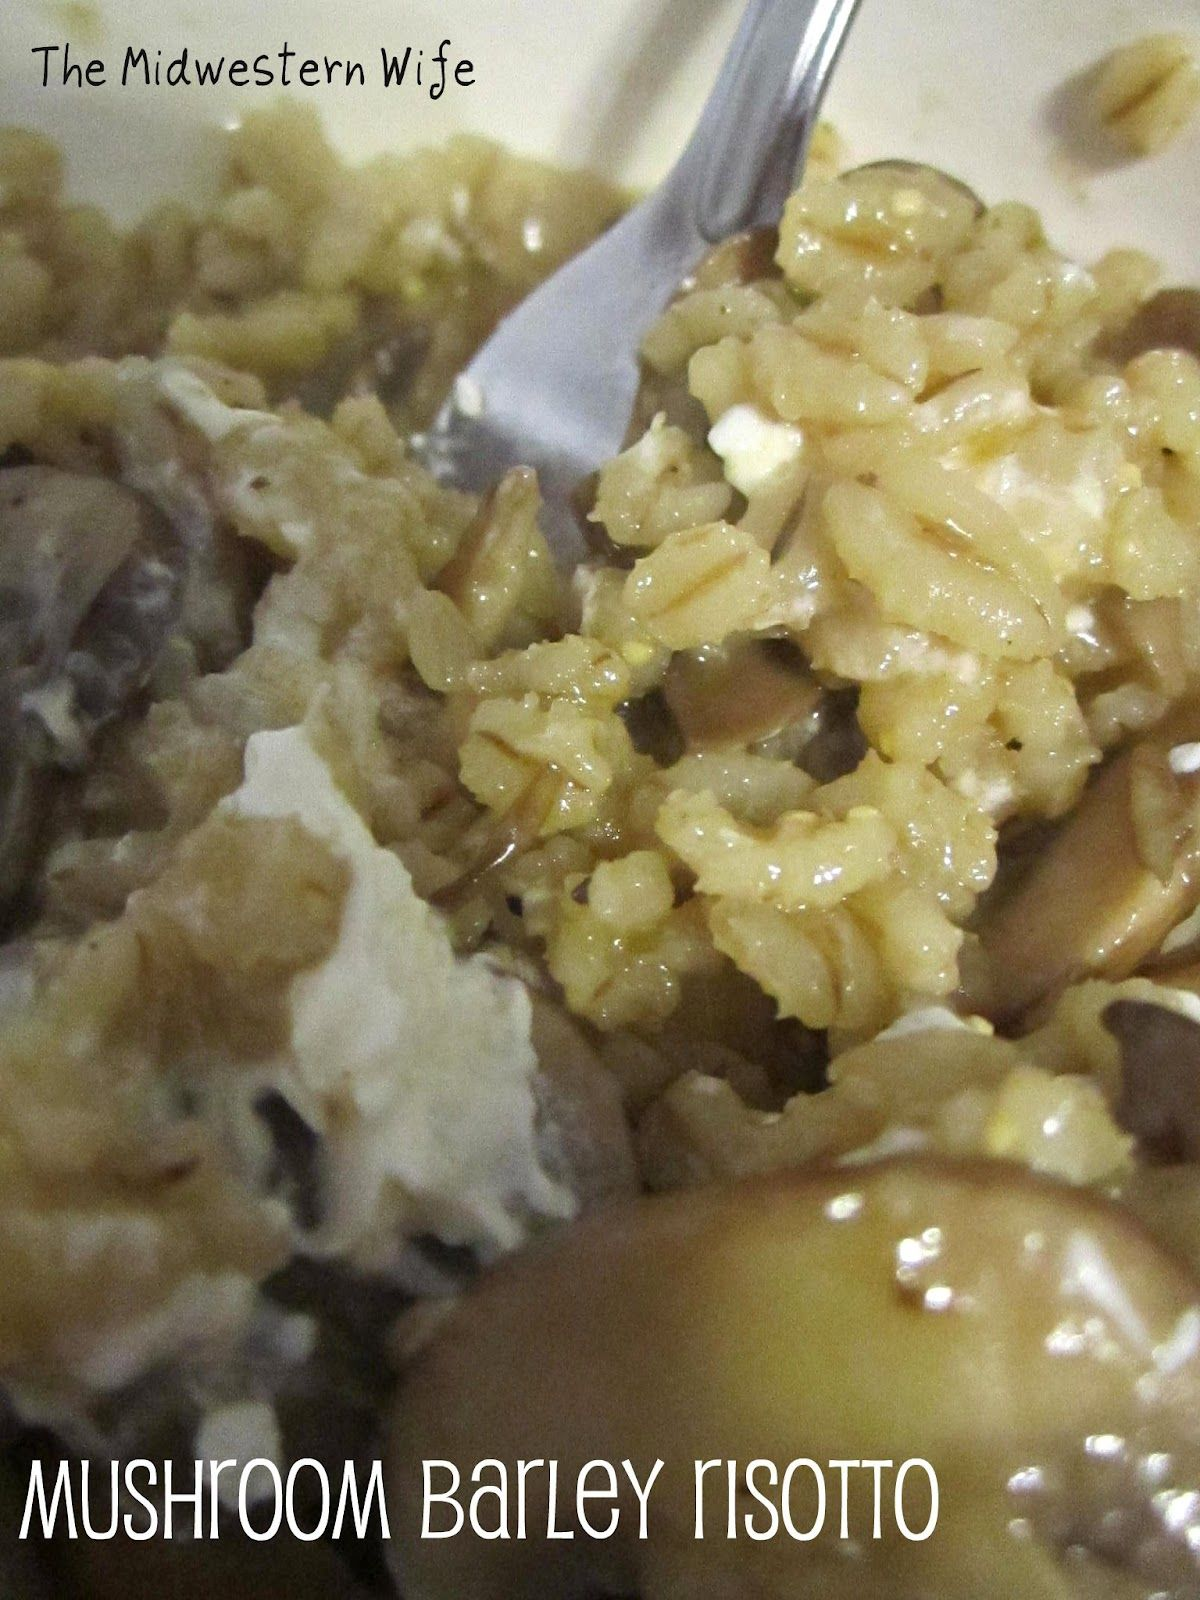 The Midwestern Wife: Mushroom and Barley Risotto